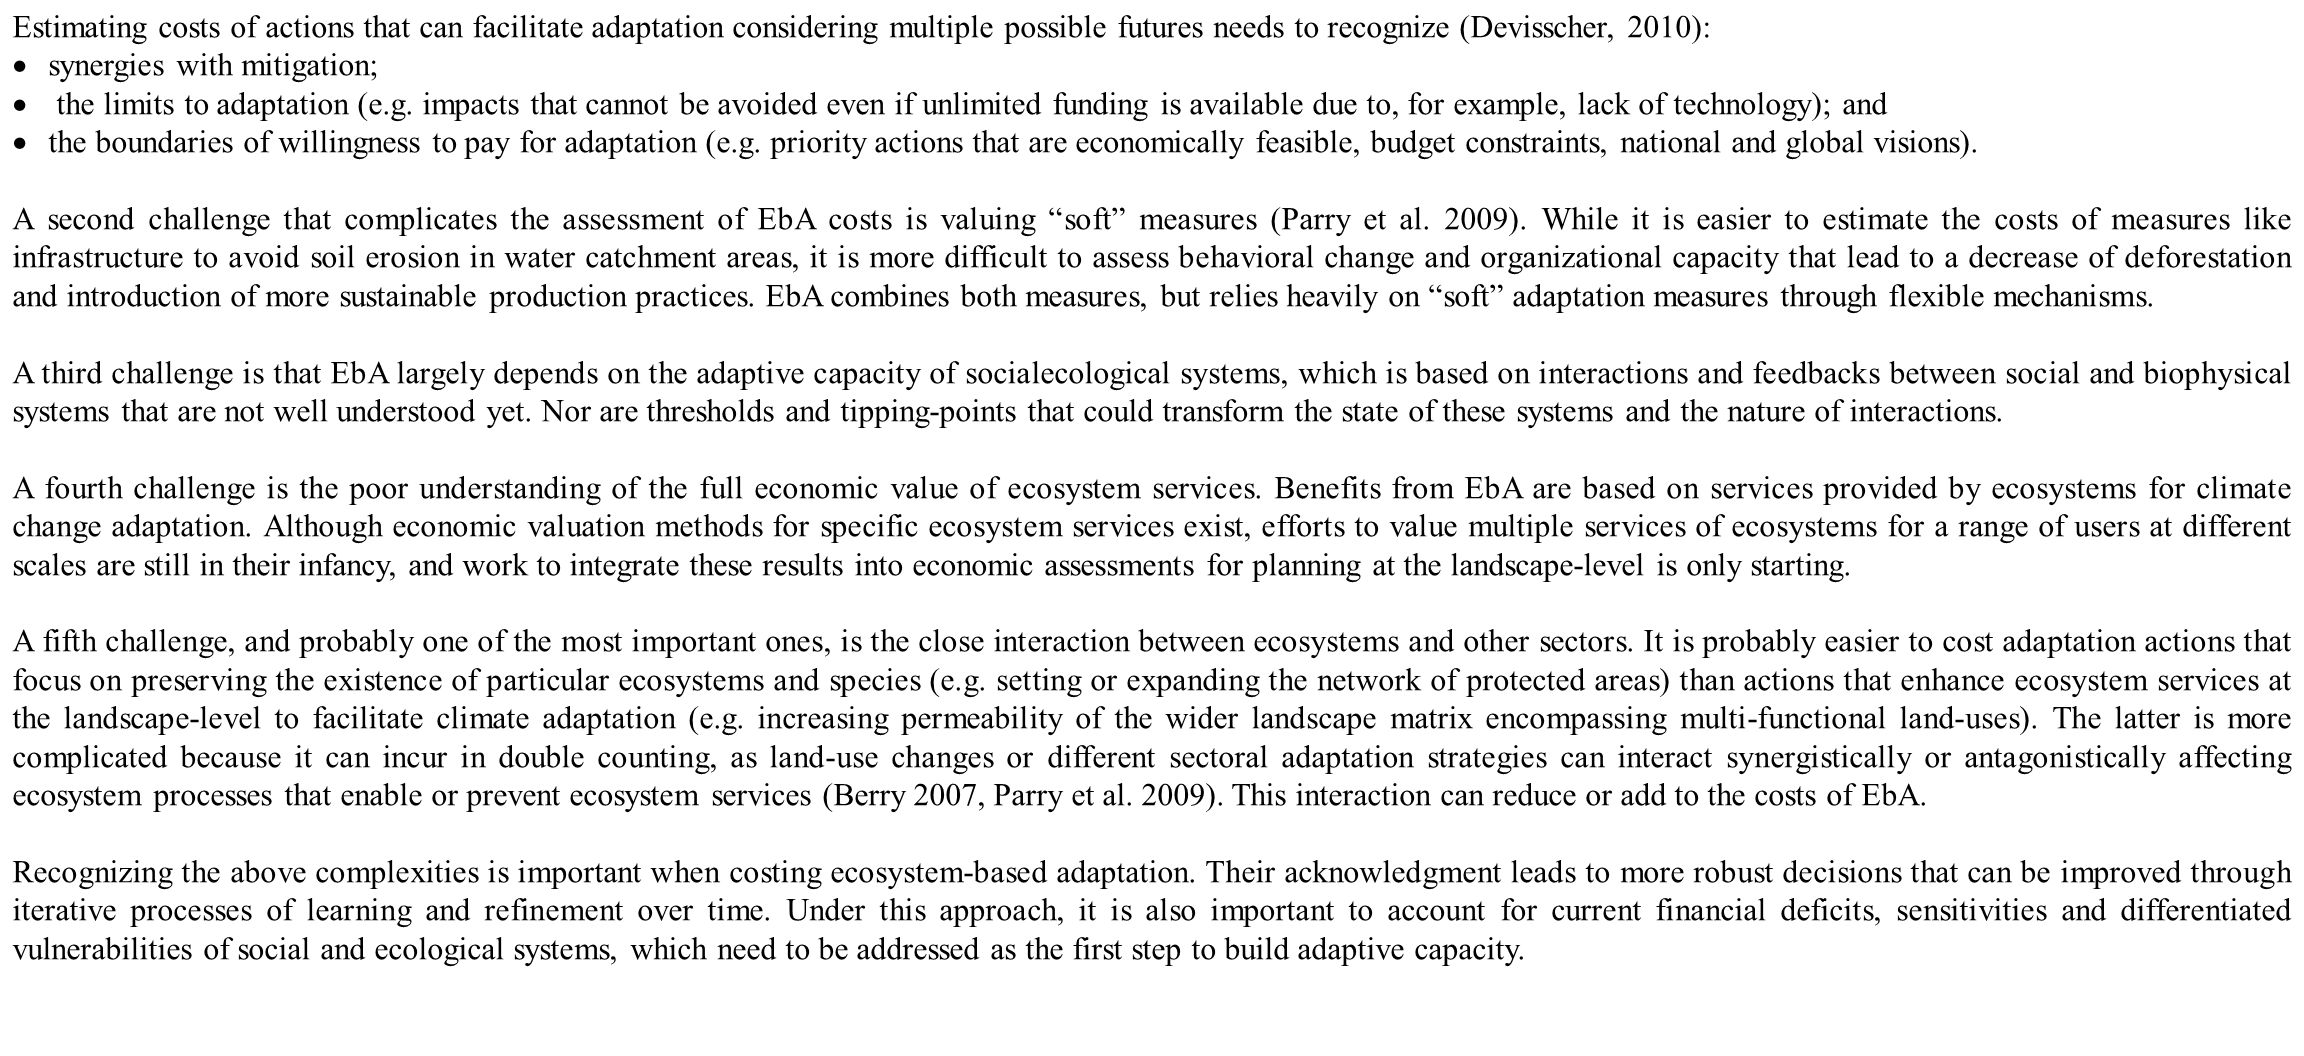 Estimating costs of actions that can facilitate adaptation considering multiple possible futures needs to recognize (Devisscher, 2010):